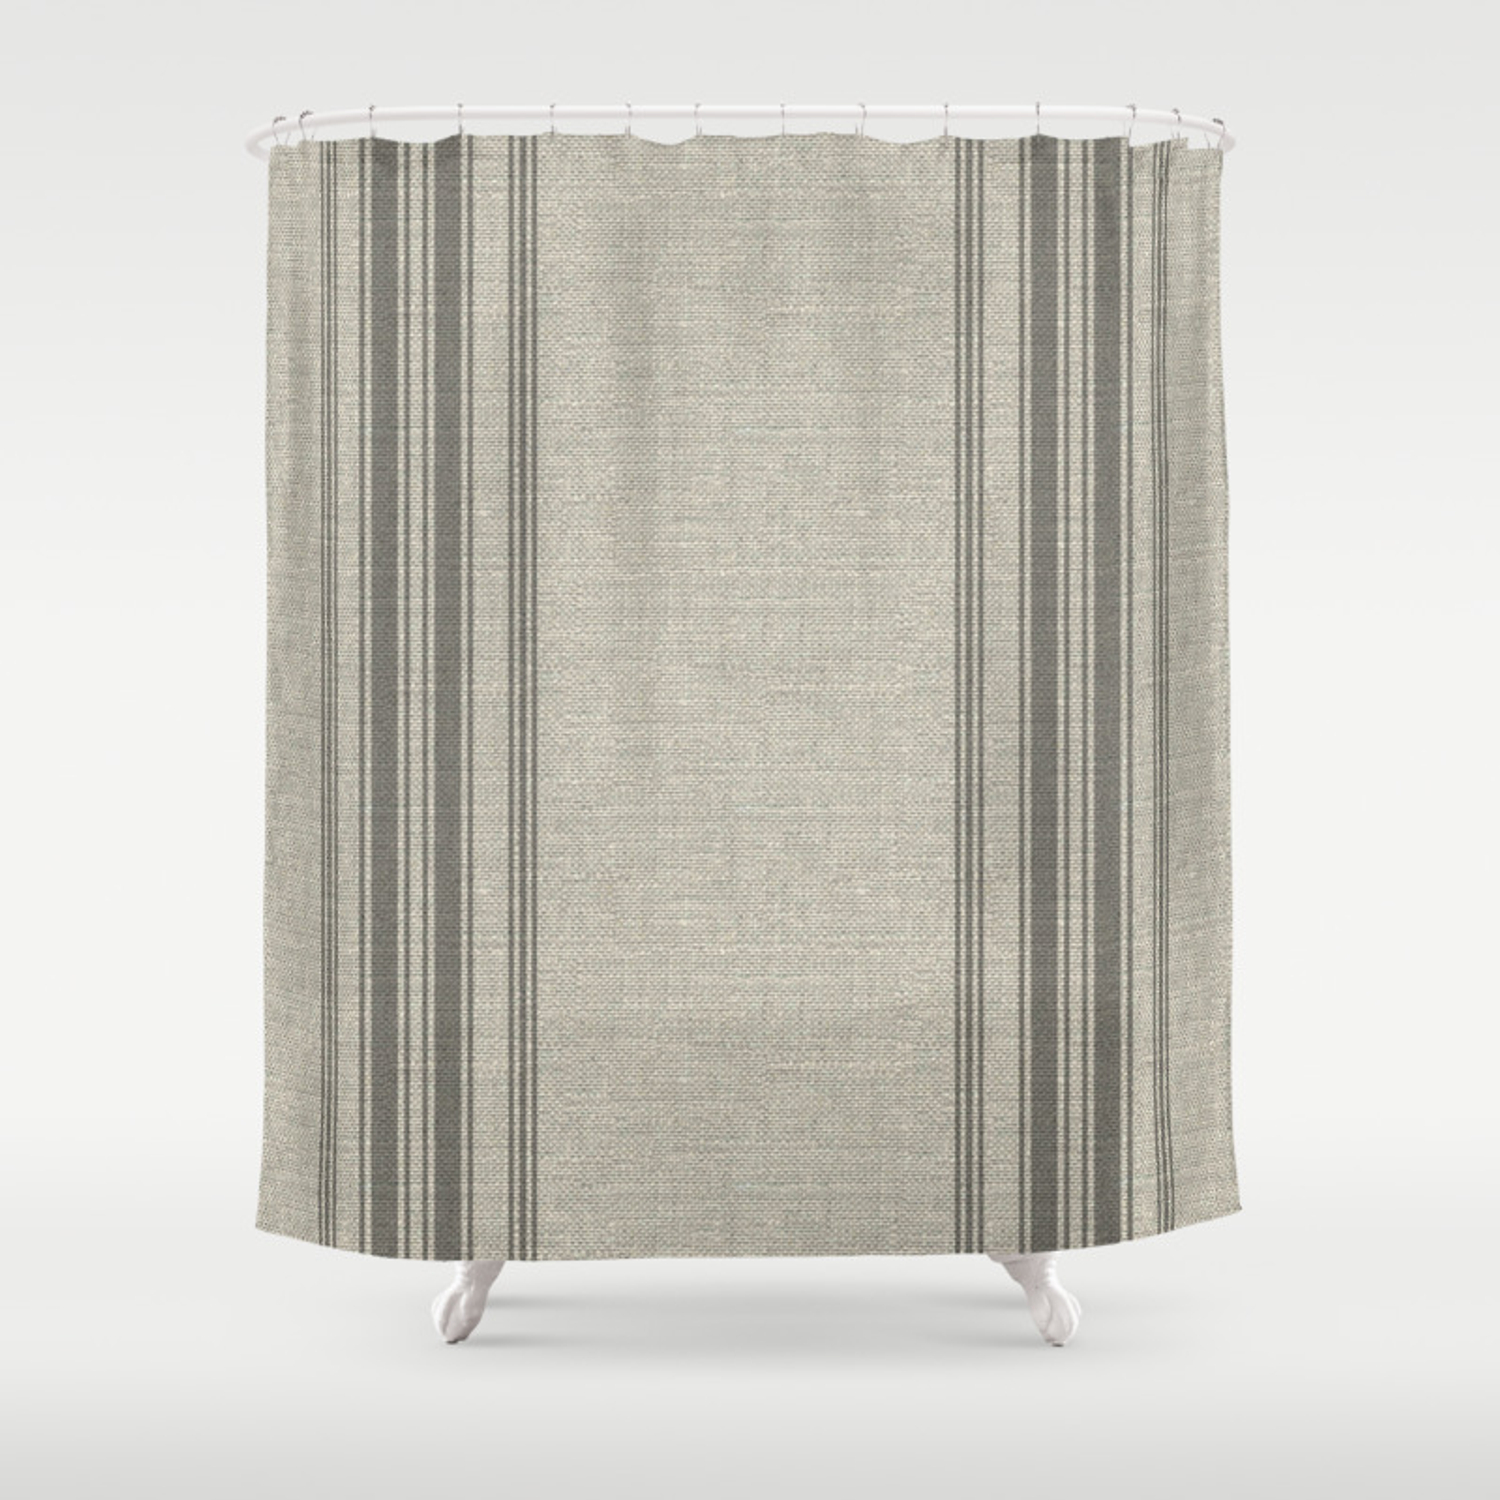 Farmhouse Linen Grey Rustic Grain Sack Texture Vintage Farmhouse Lined Linen Design Modern Rustic Shower Curtain